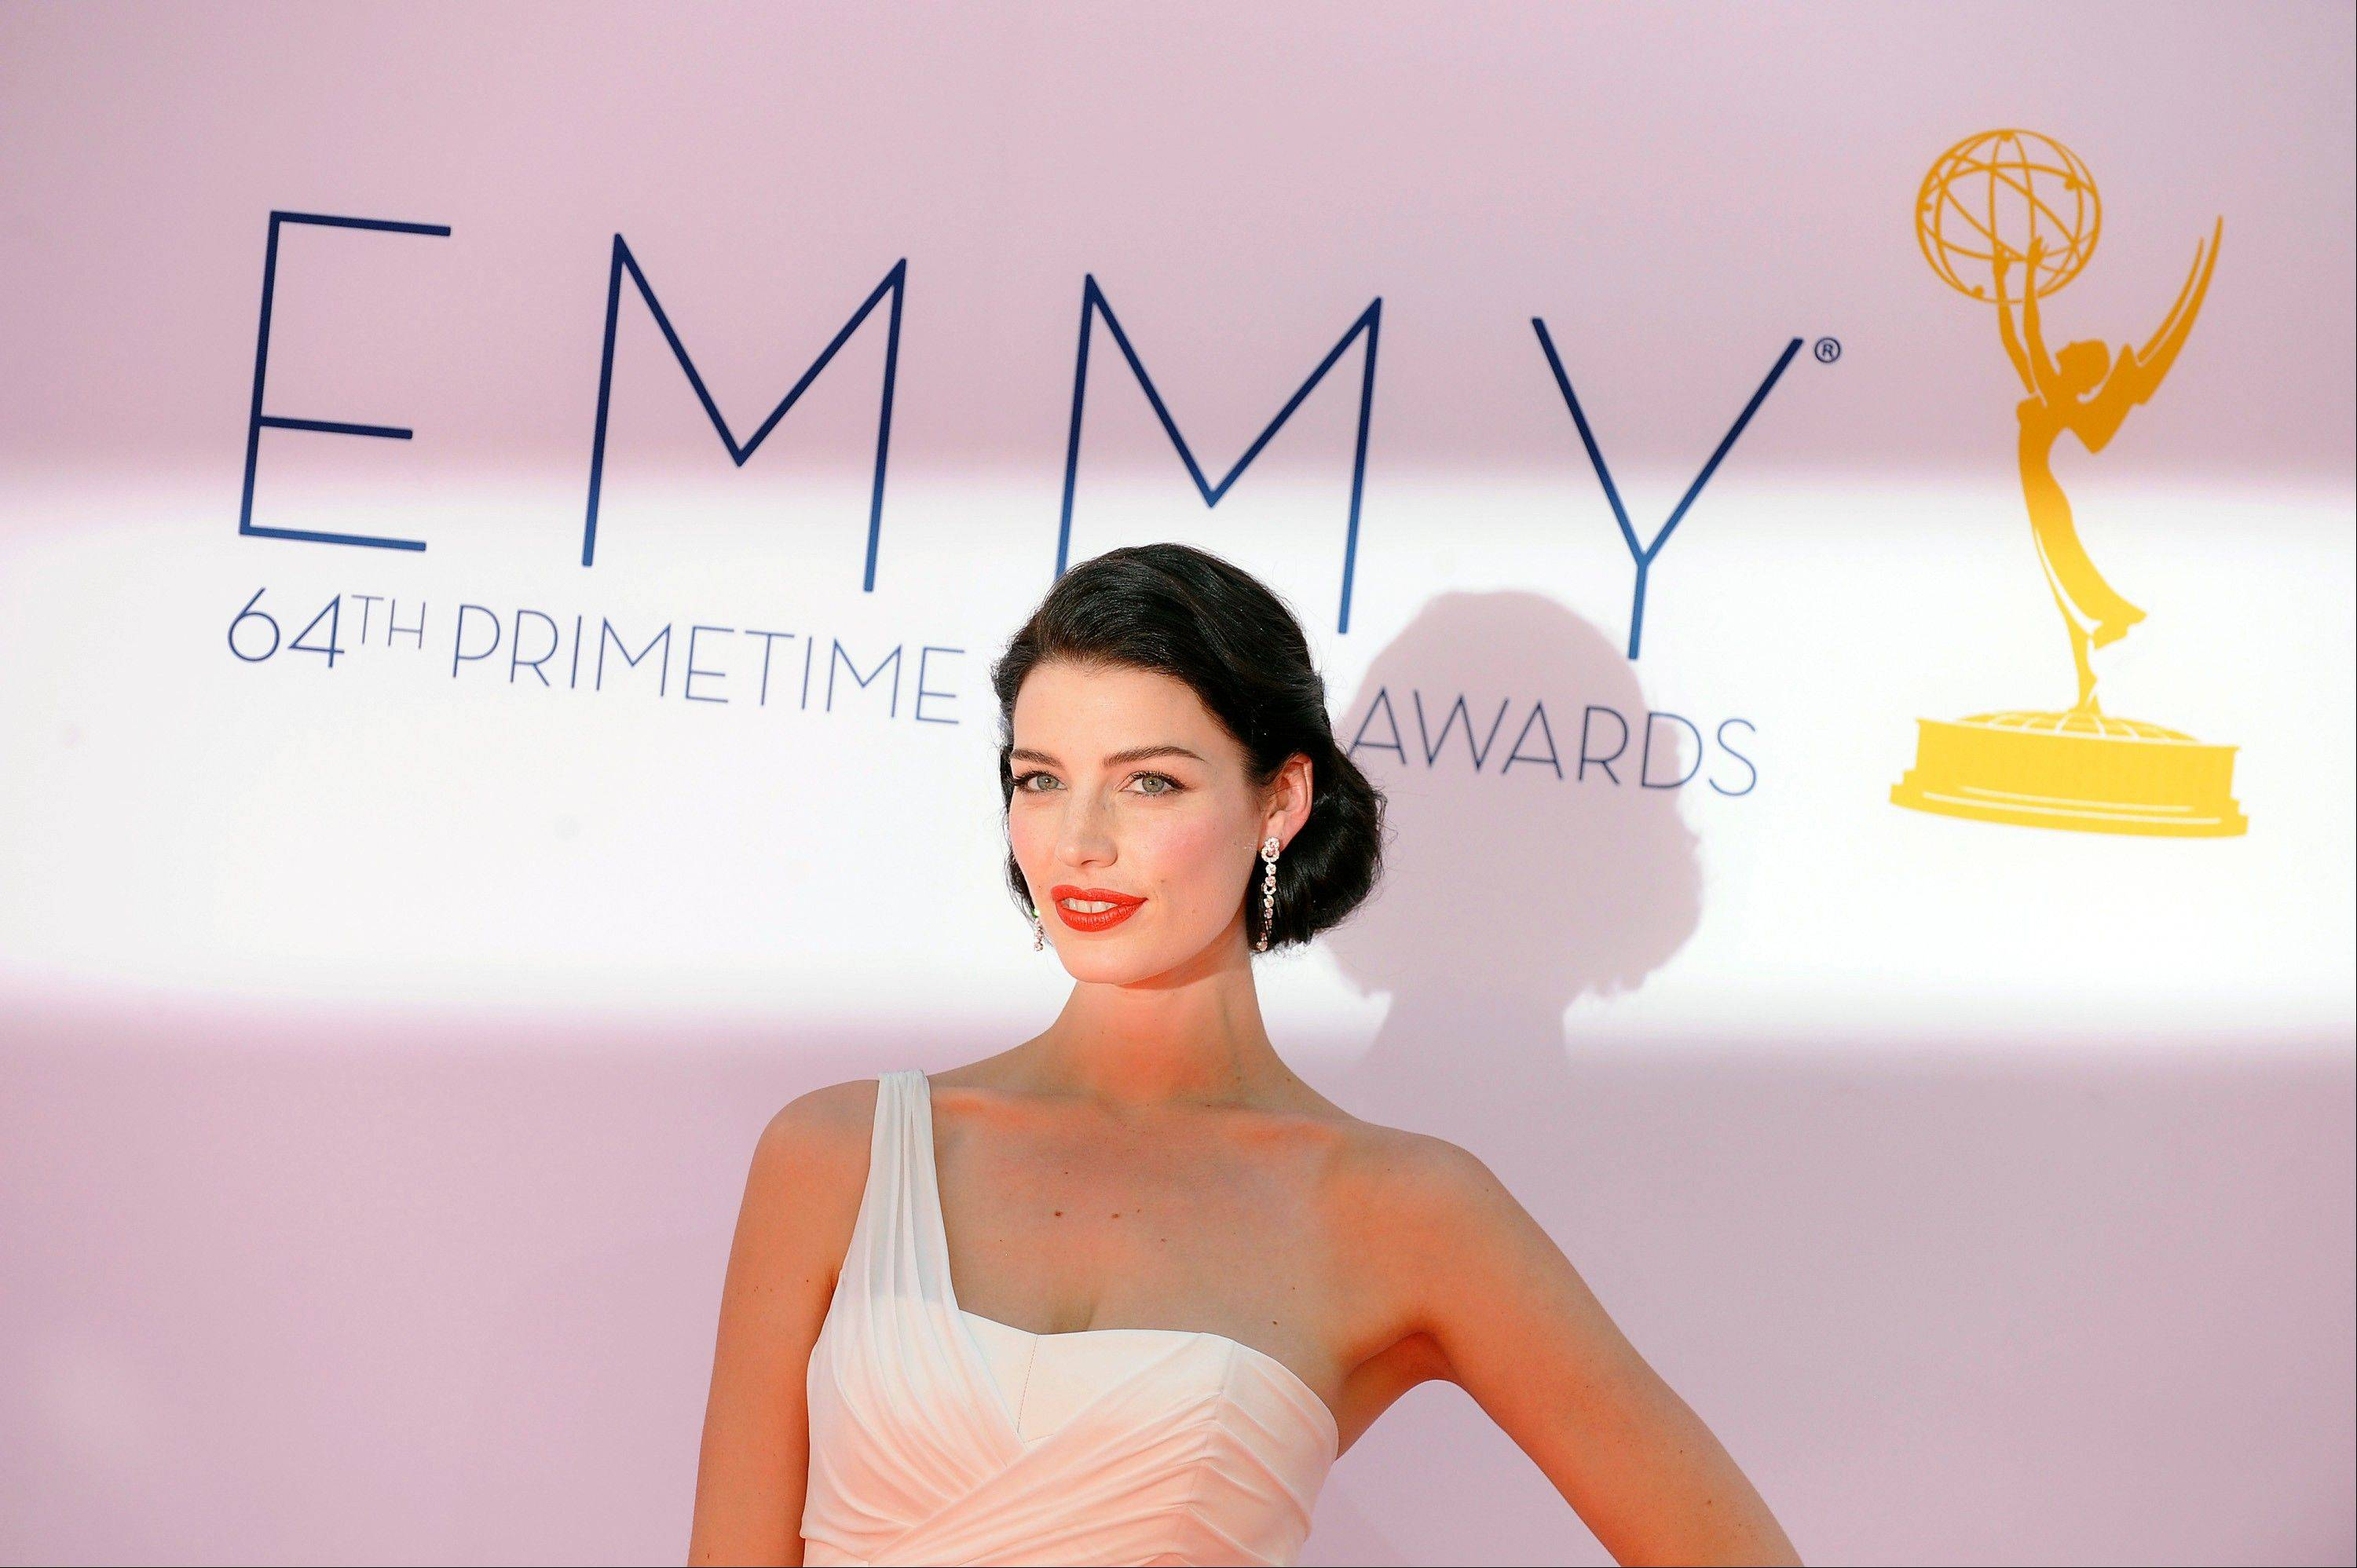 Actress Jessica Pare arrives at the 64th Primetime Emmy Awards at the Nokia Theatre on Sunday, Sept. 23, 2012, in Los Angeles.